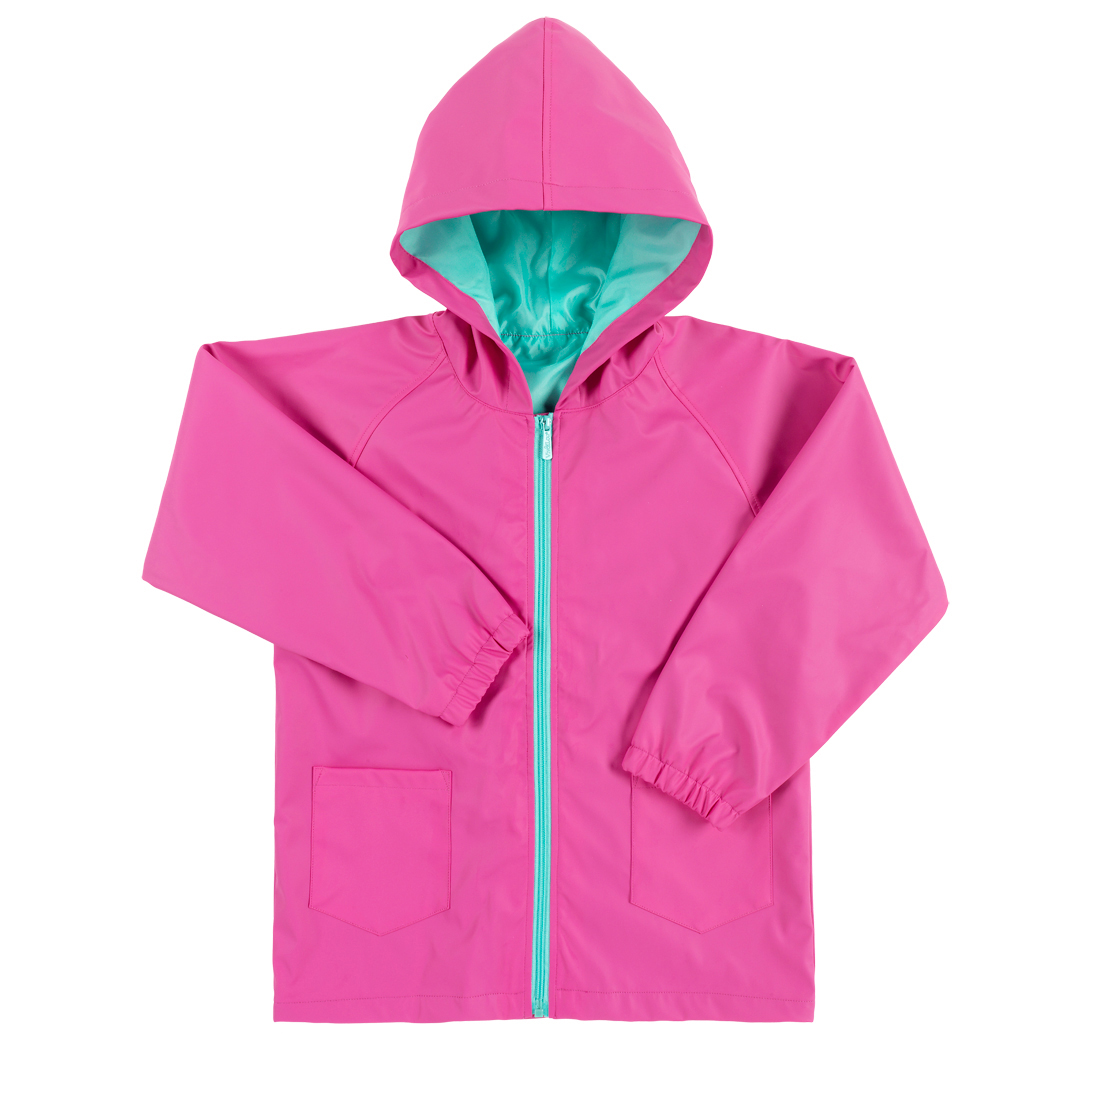 Hot Pink Kids' Rain Jacket - Small, medium or large